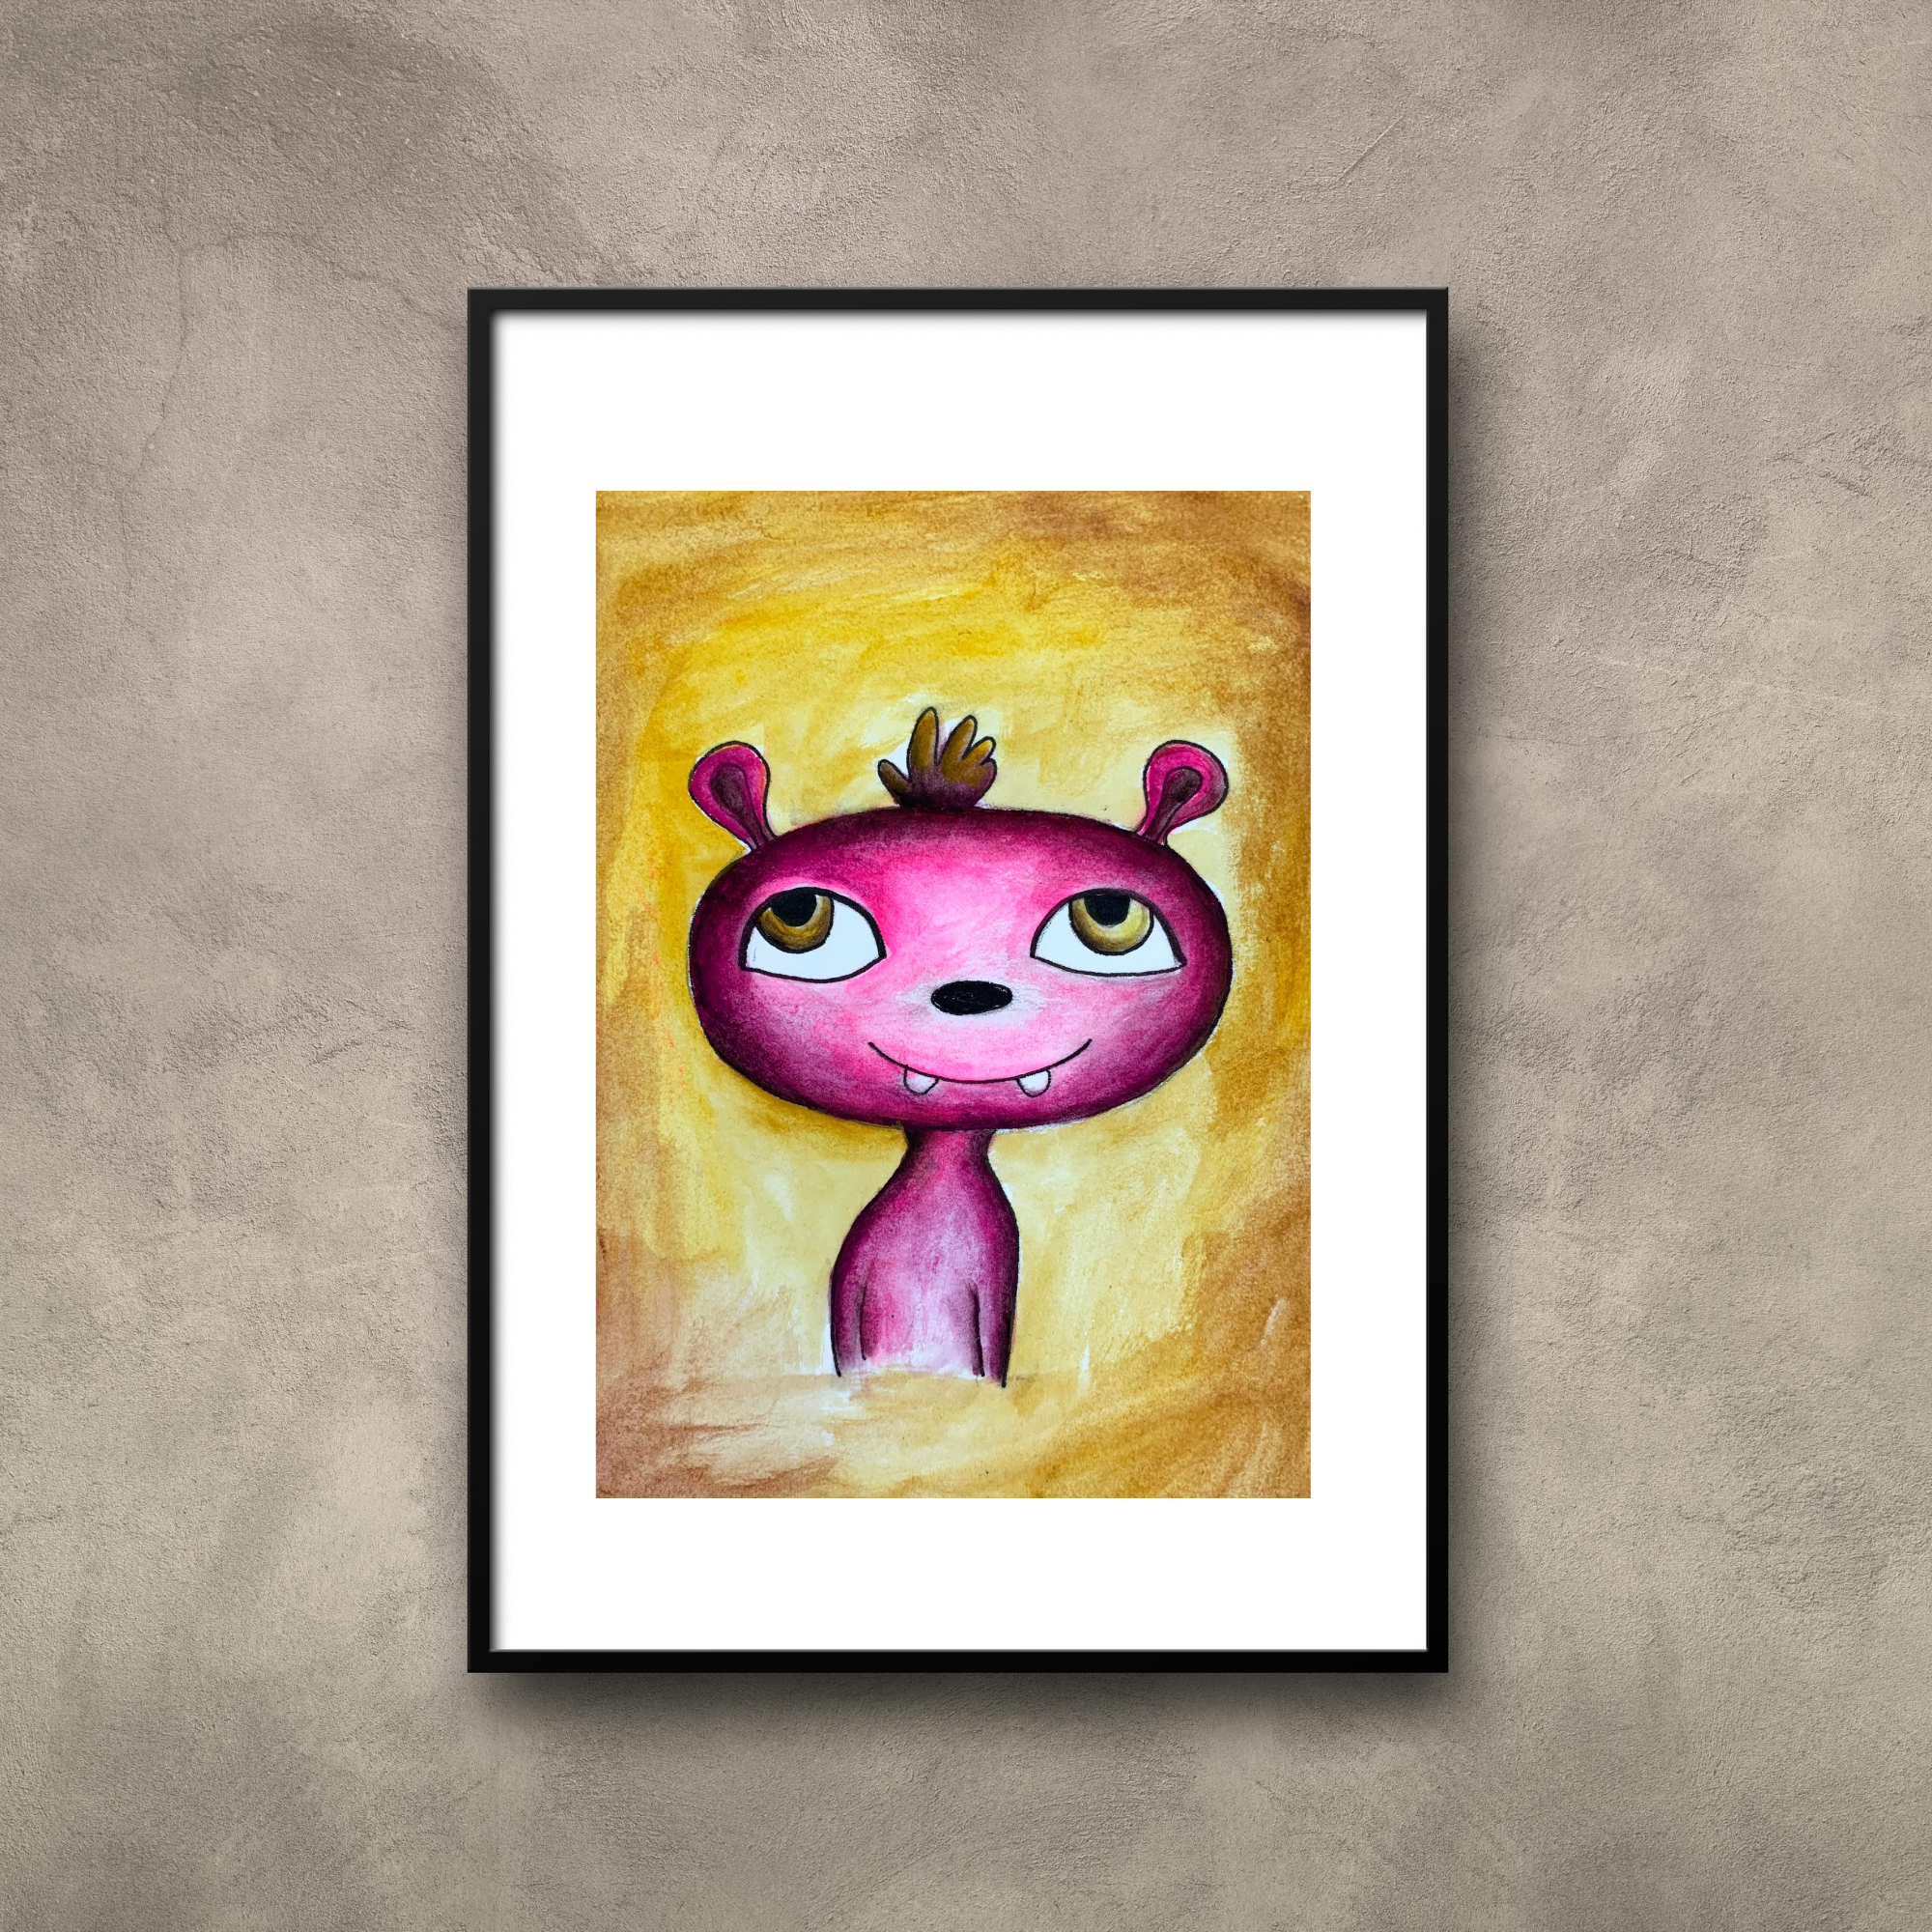 Happy Monster Painting Fantasy Creature Spooky Art Print Etsy In 2020 Etsy Painting Feel Better Gifts Etsy